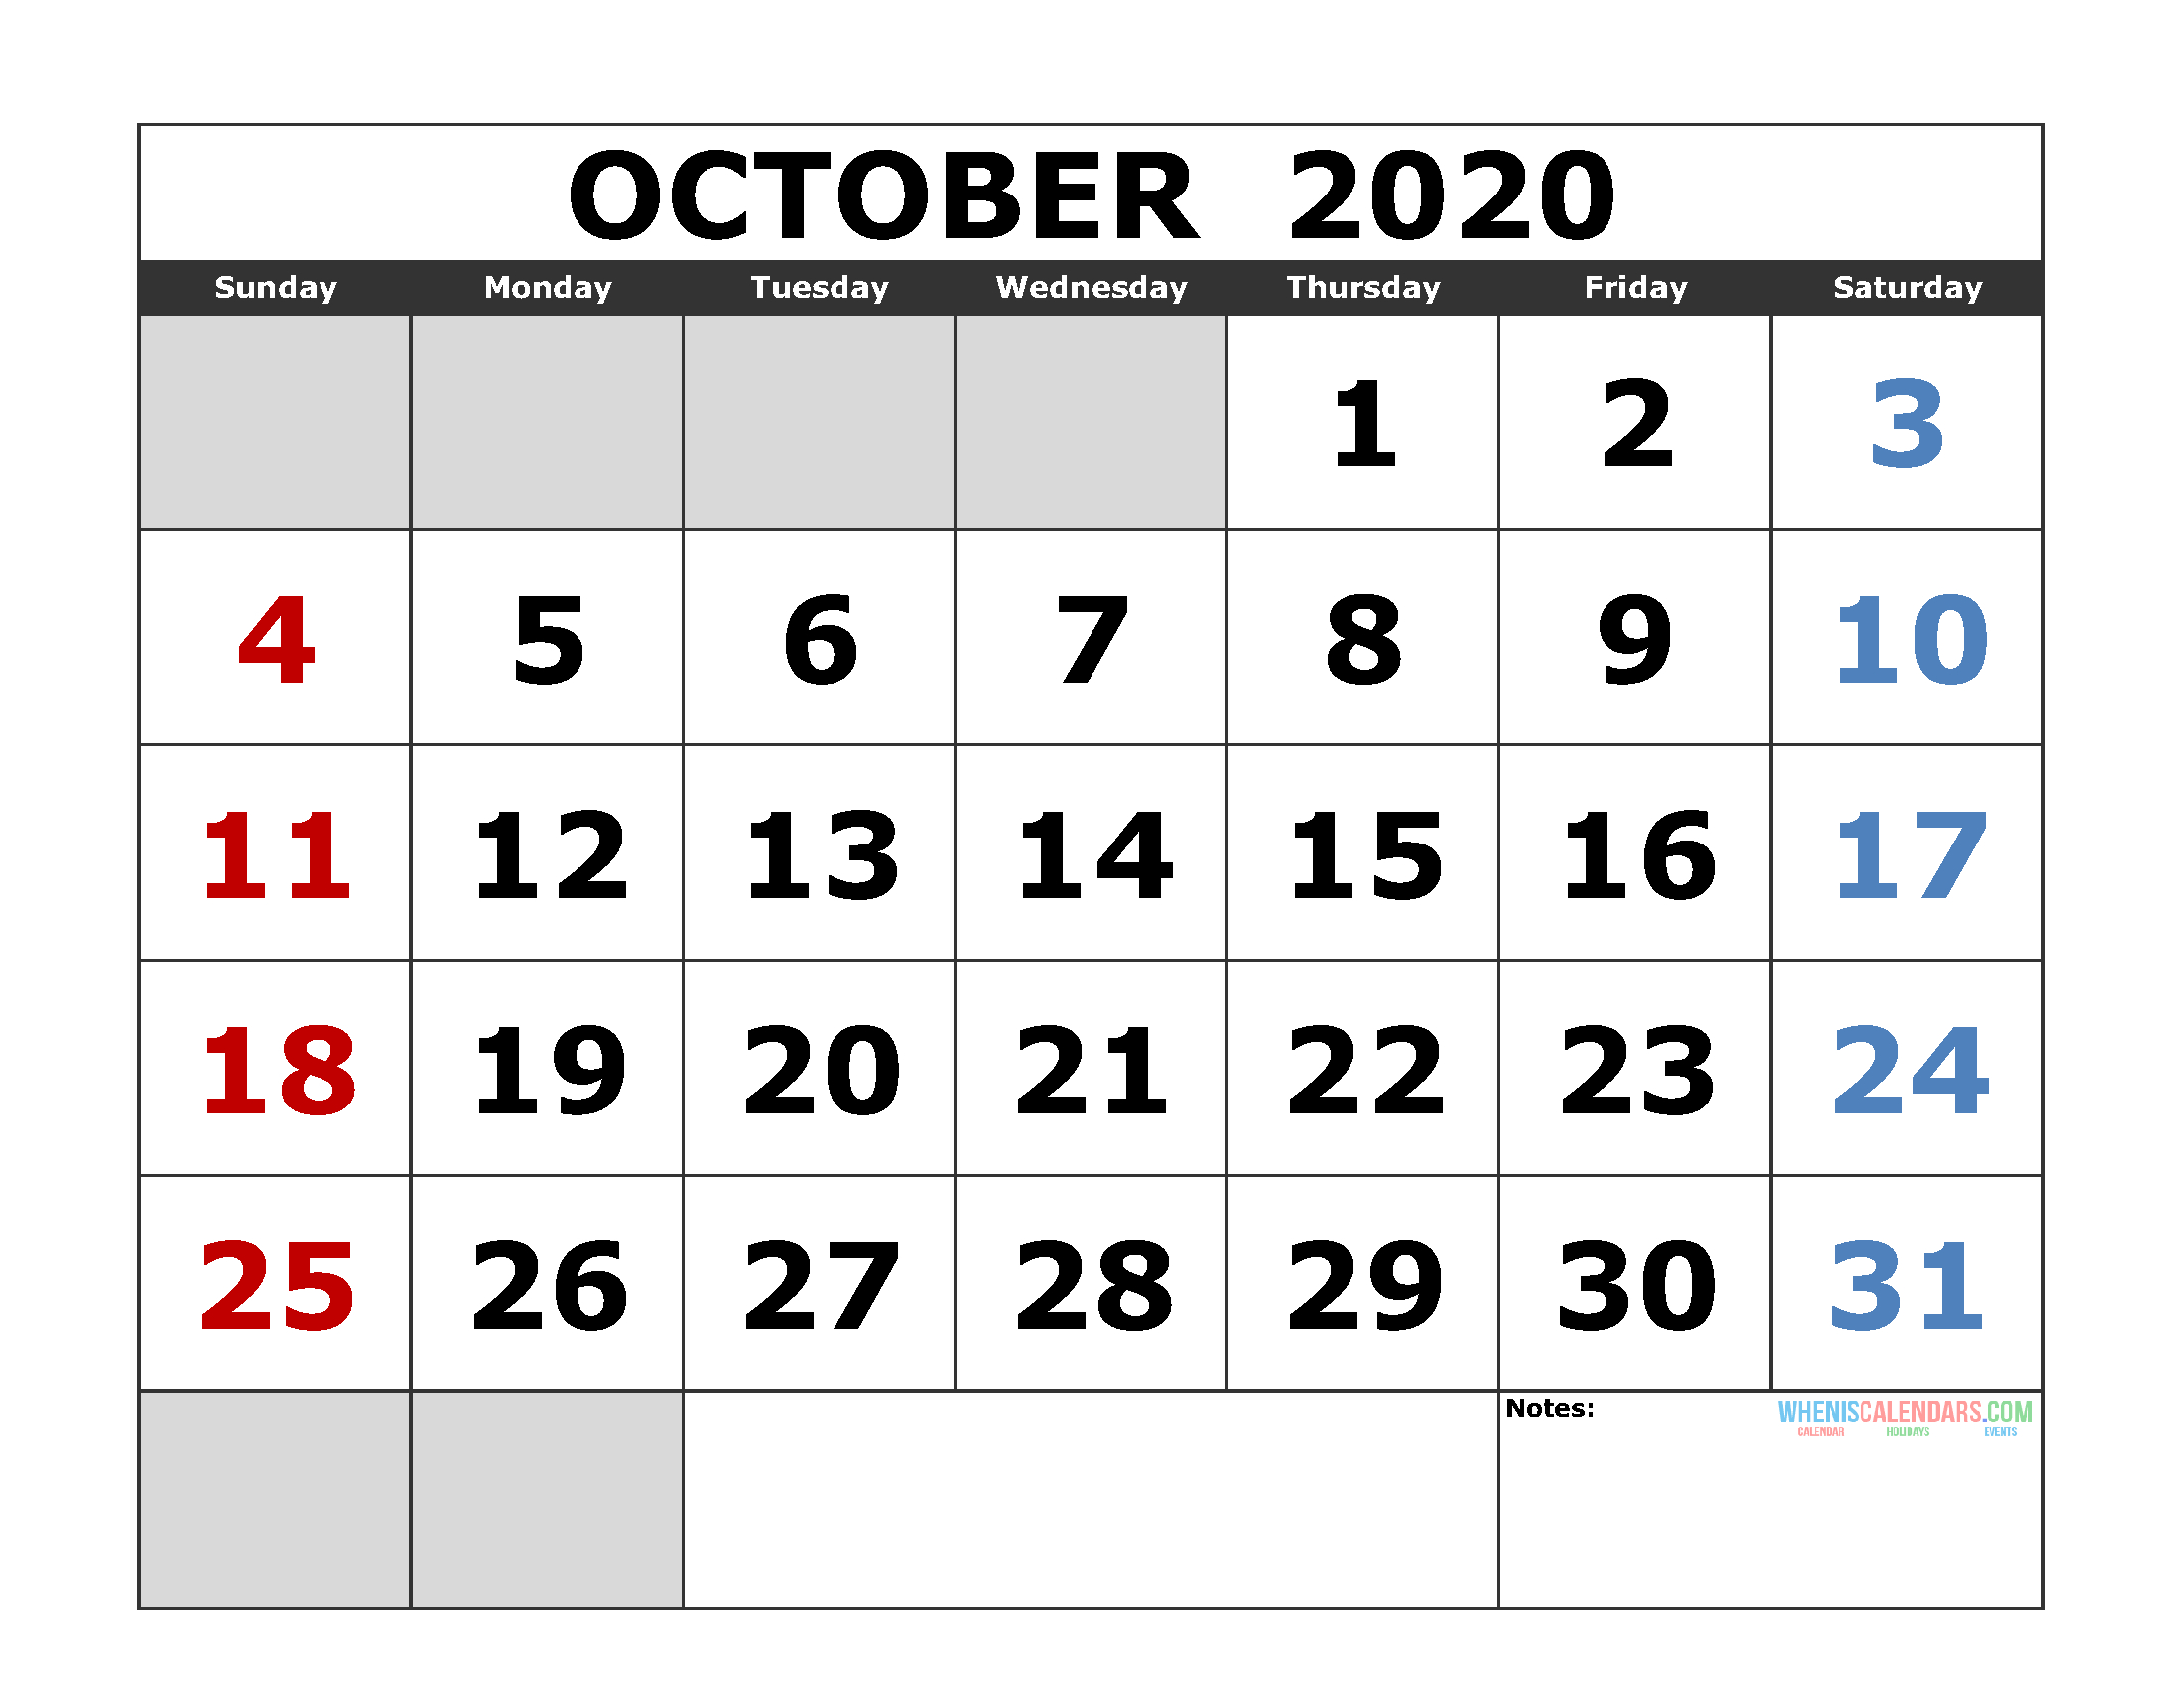 October 2020 Printable Calendar Template Excel, Pdf, Image